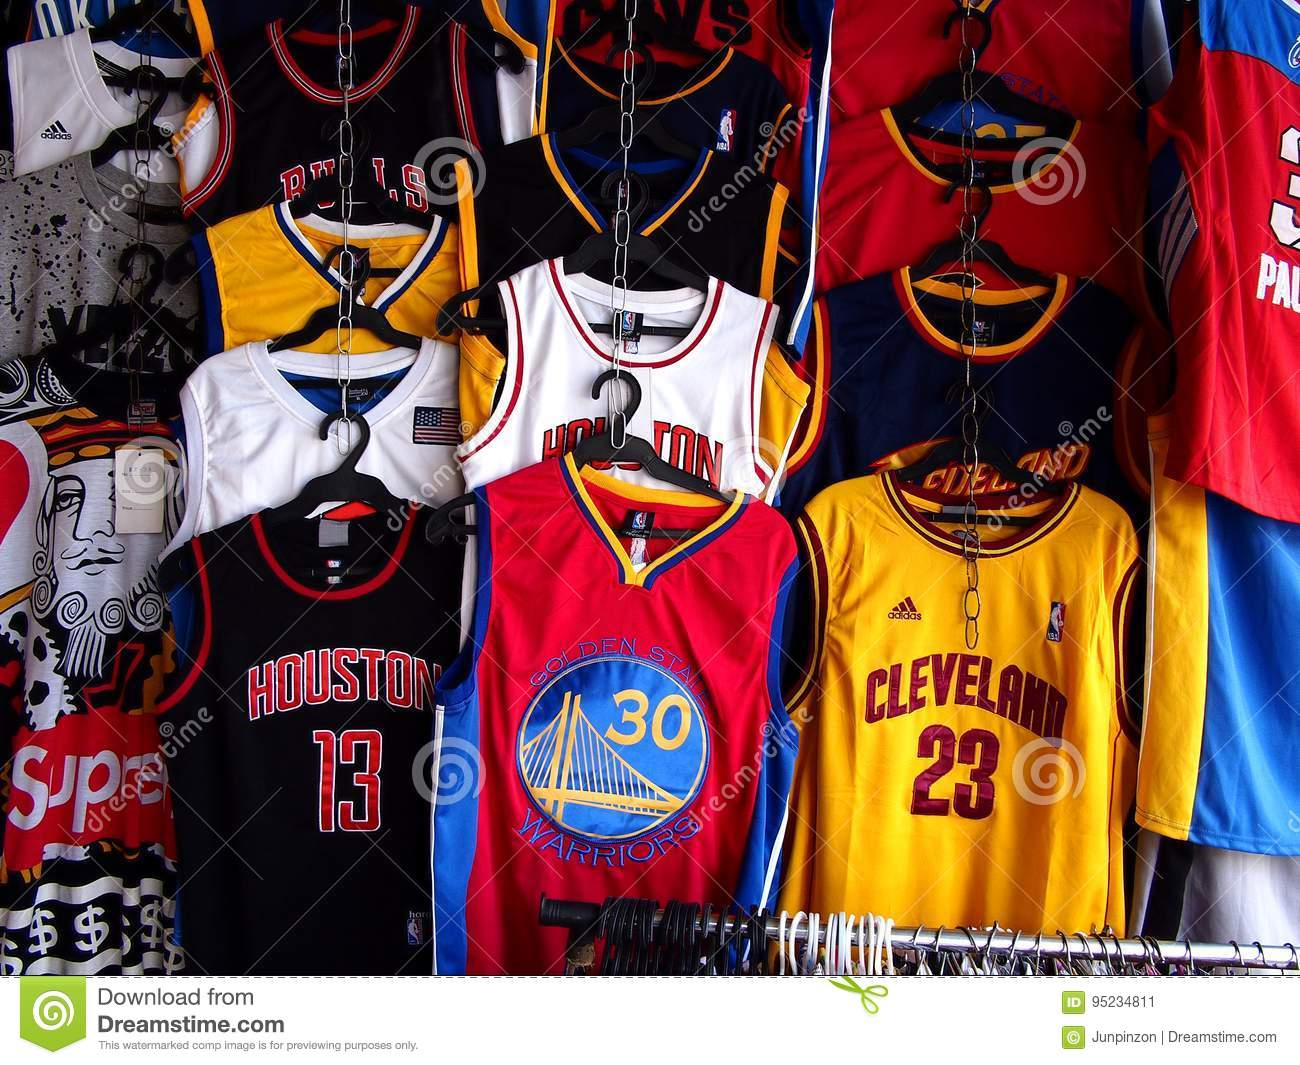 sports jerseys for sale Cheaper Than Retail Price> Buy Clothing ...